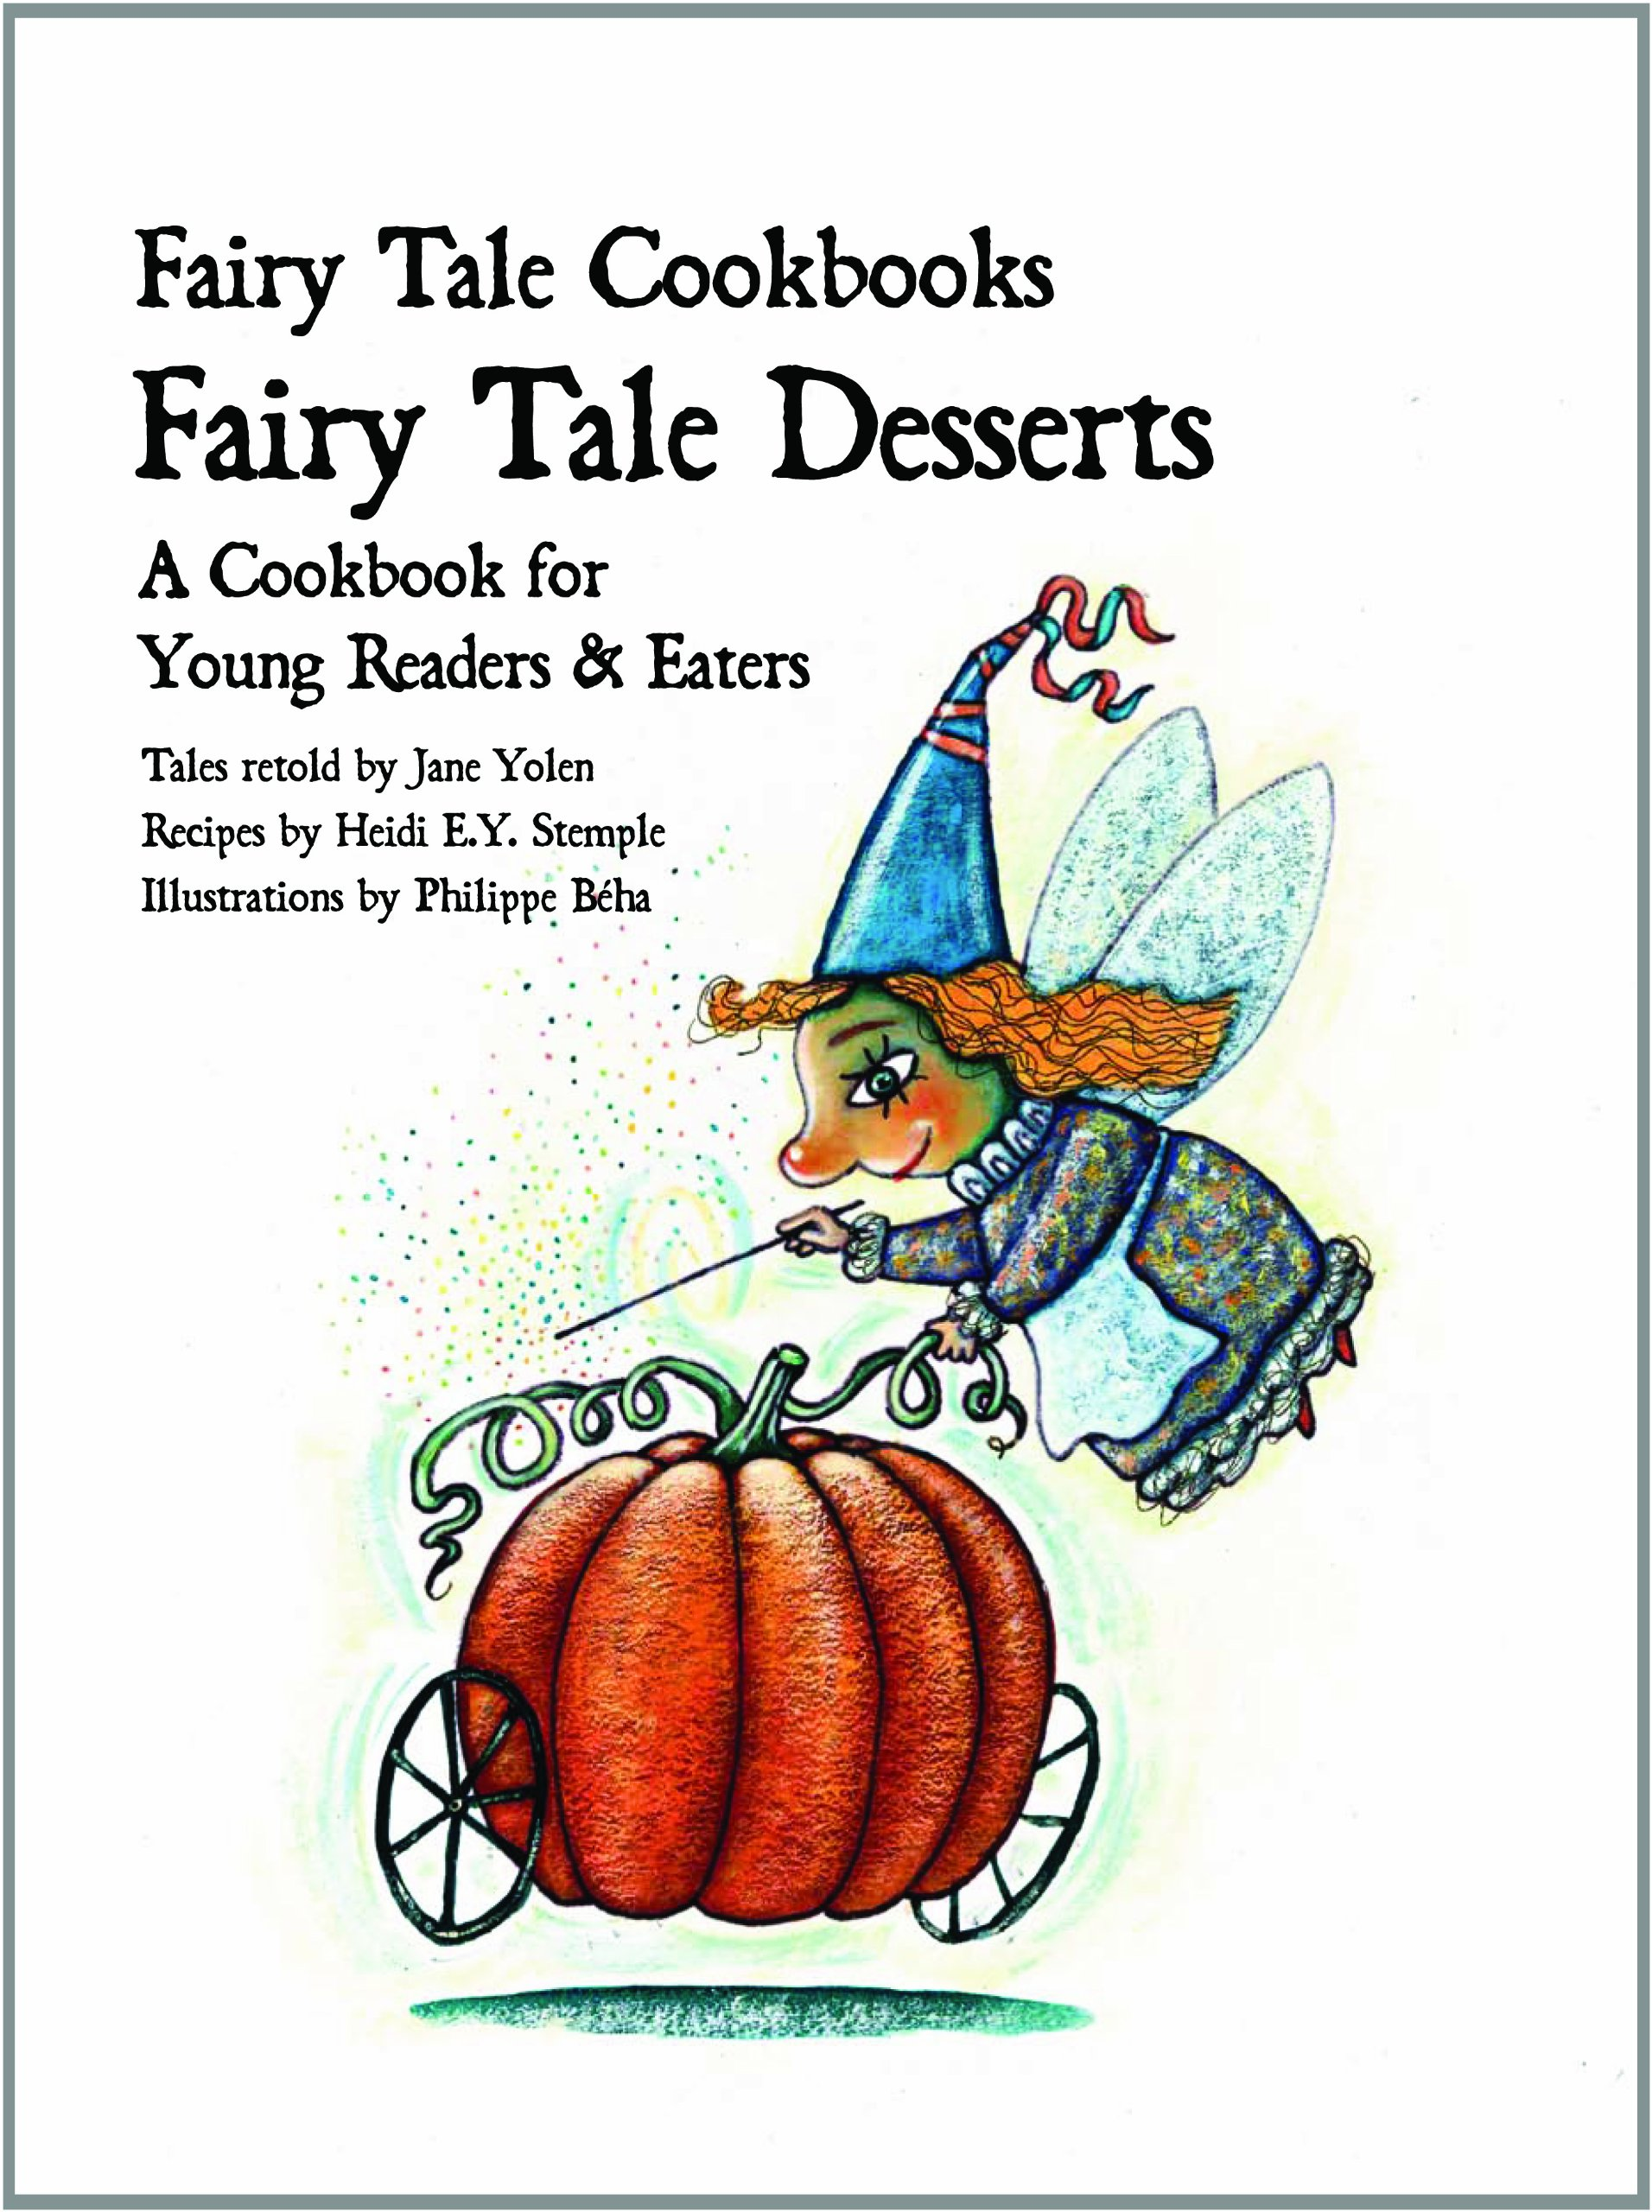 Download Fairy Tale Desserts: A Cookbook for Young Readers and Eaters (Fairy Tale Cookbooks) ebook